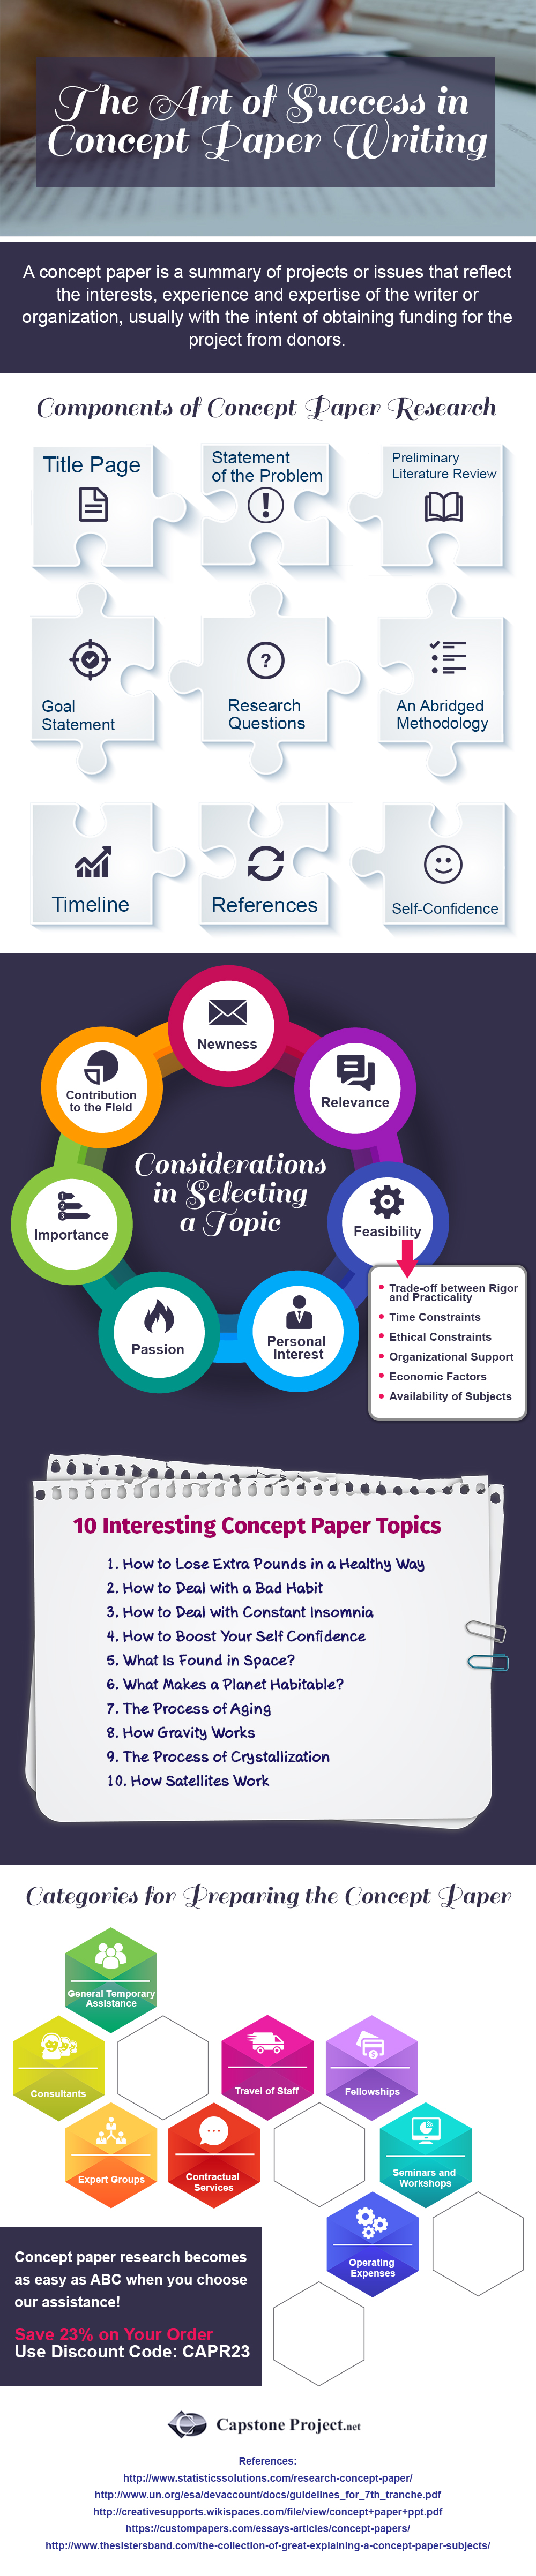 concept paper writing